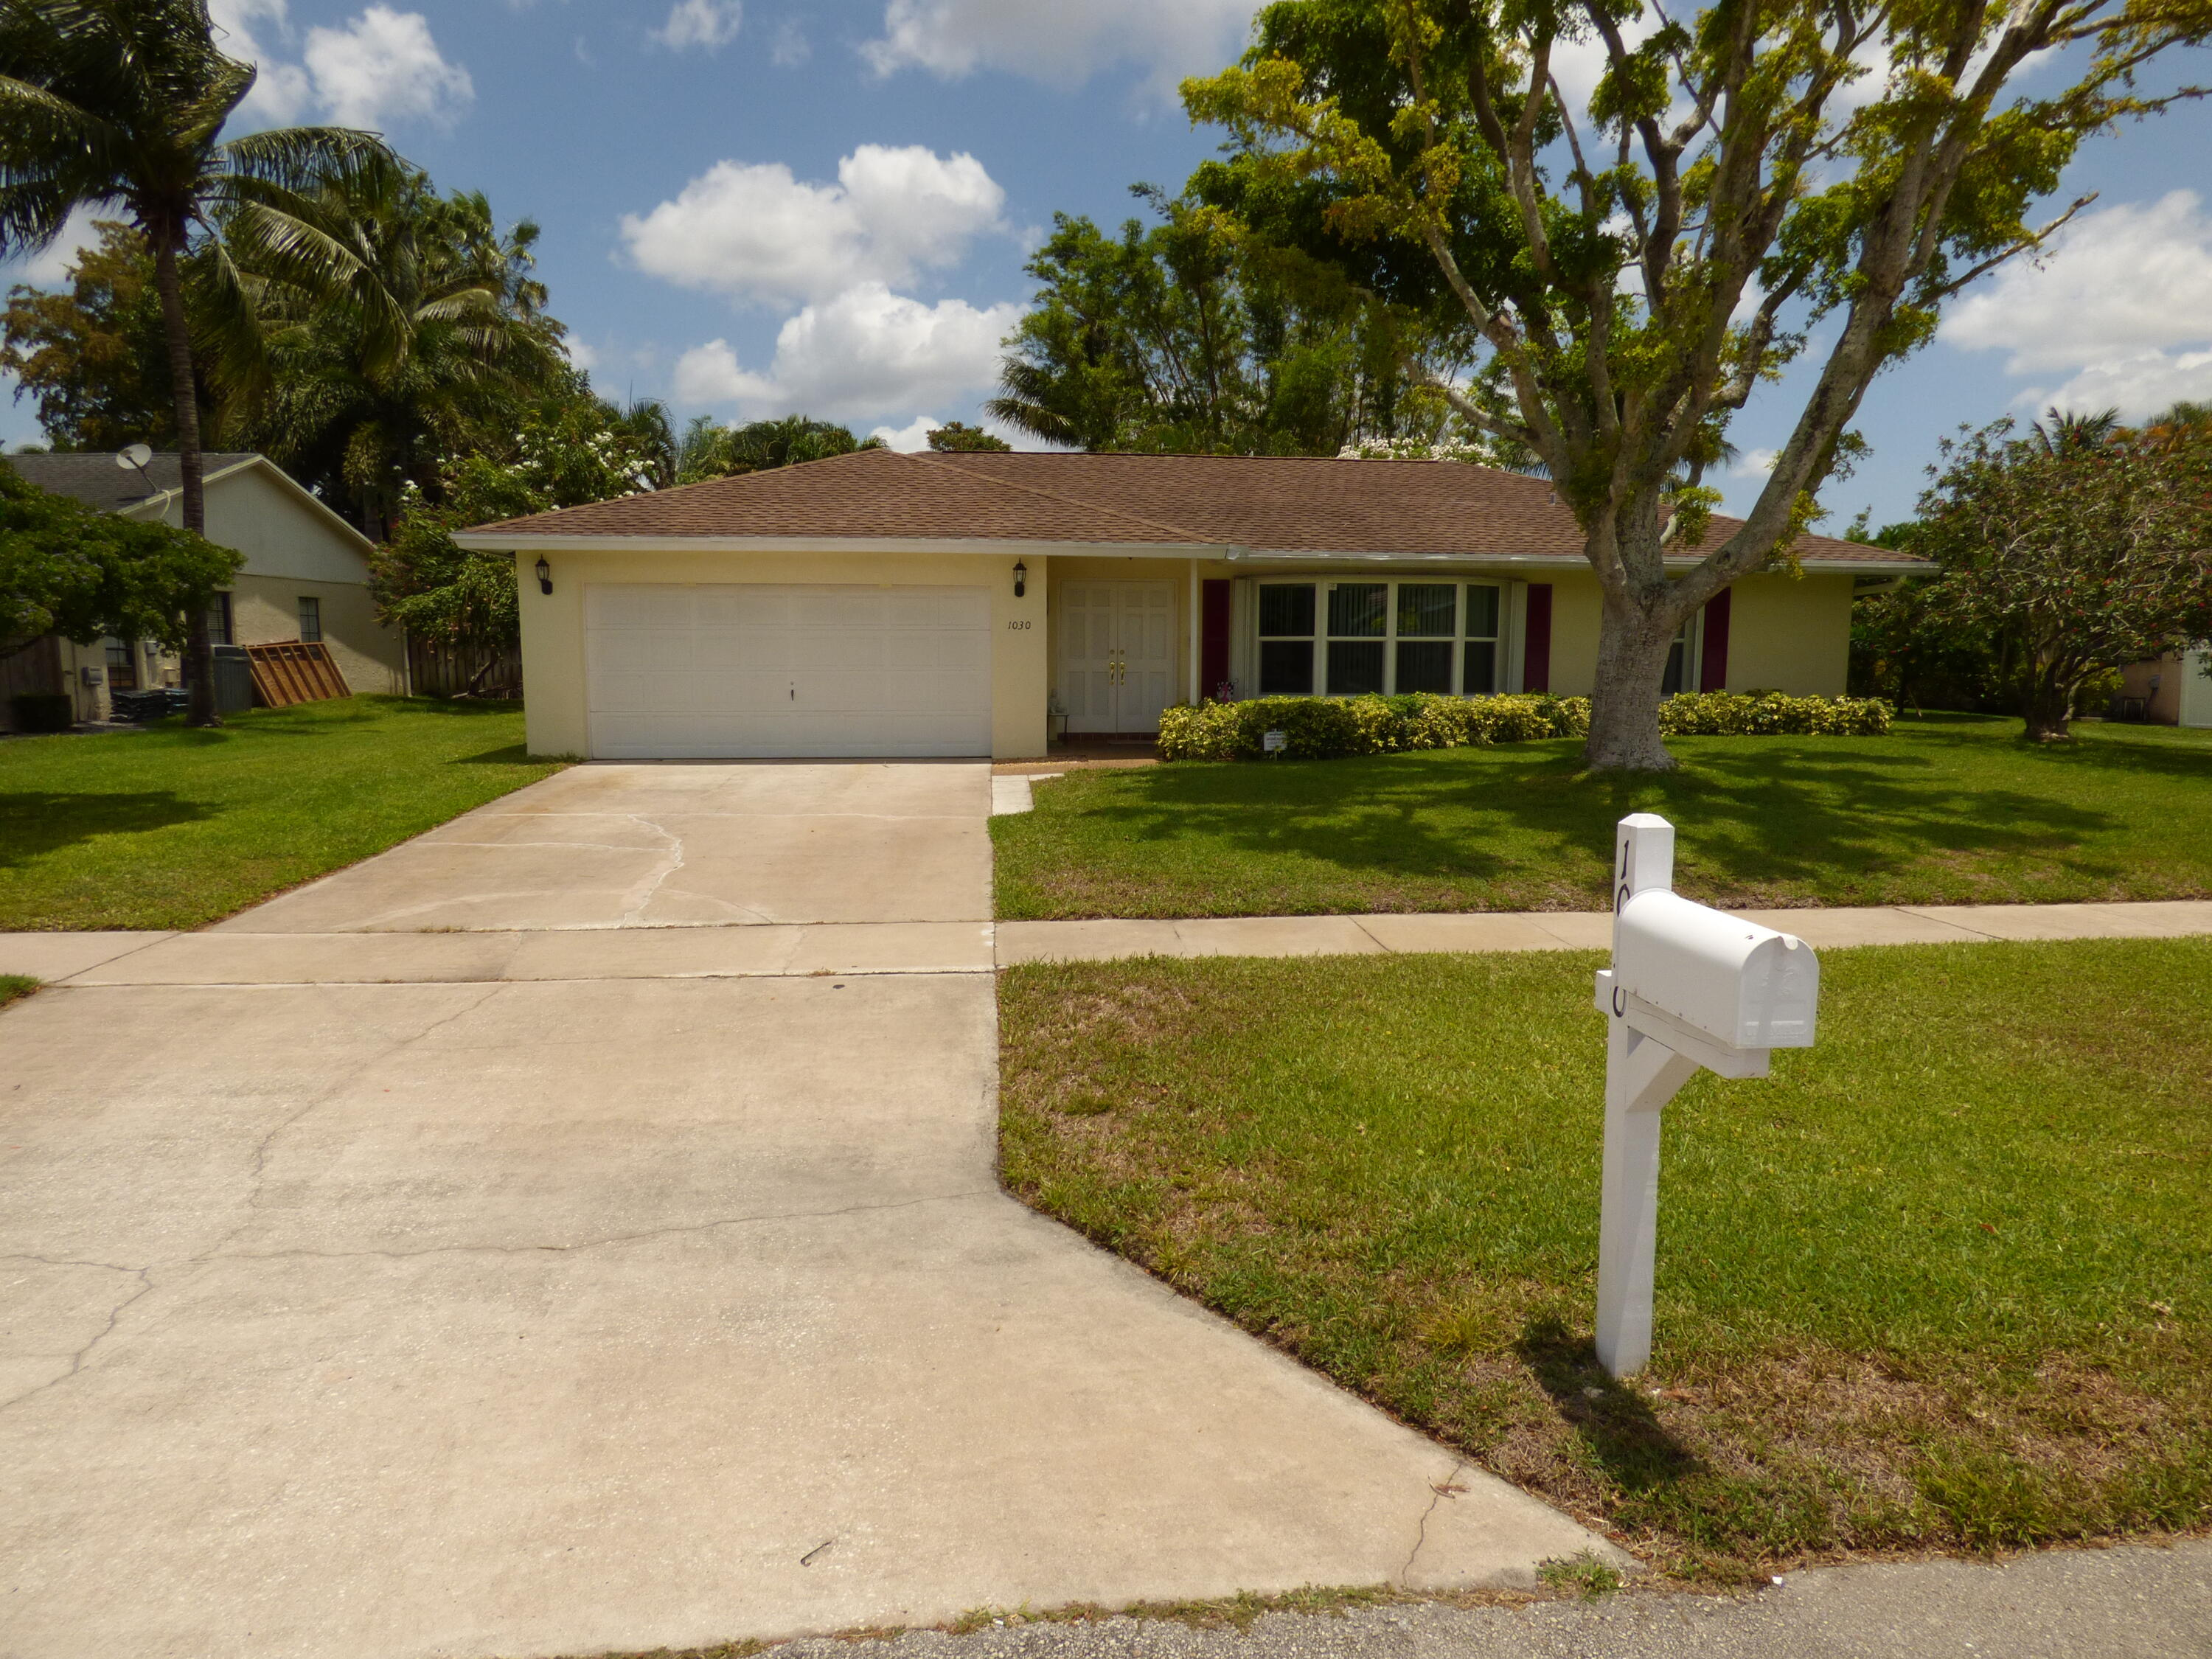 1030  Hickory Trail  For Sale 10718222, FL